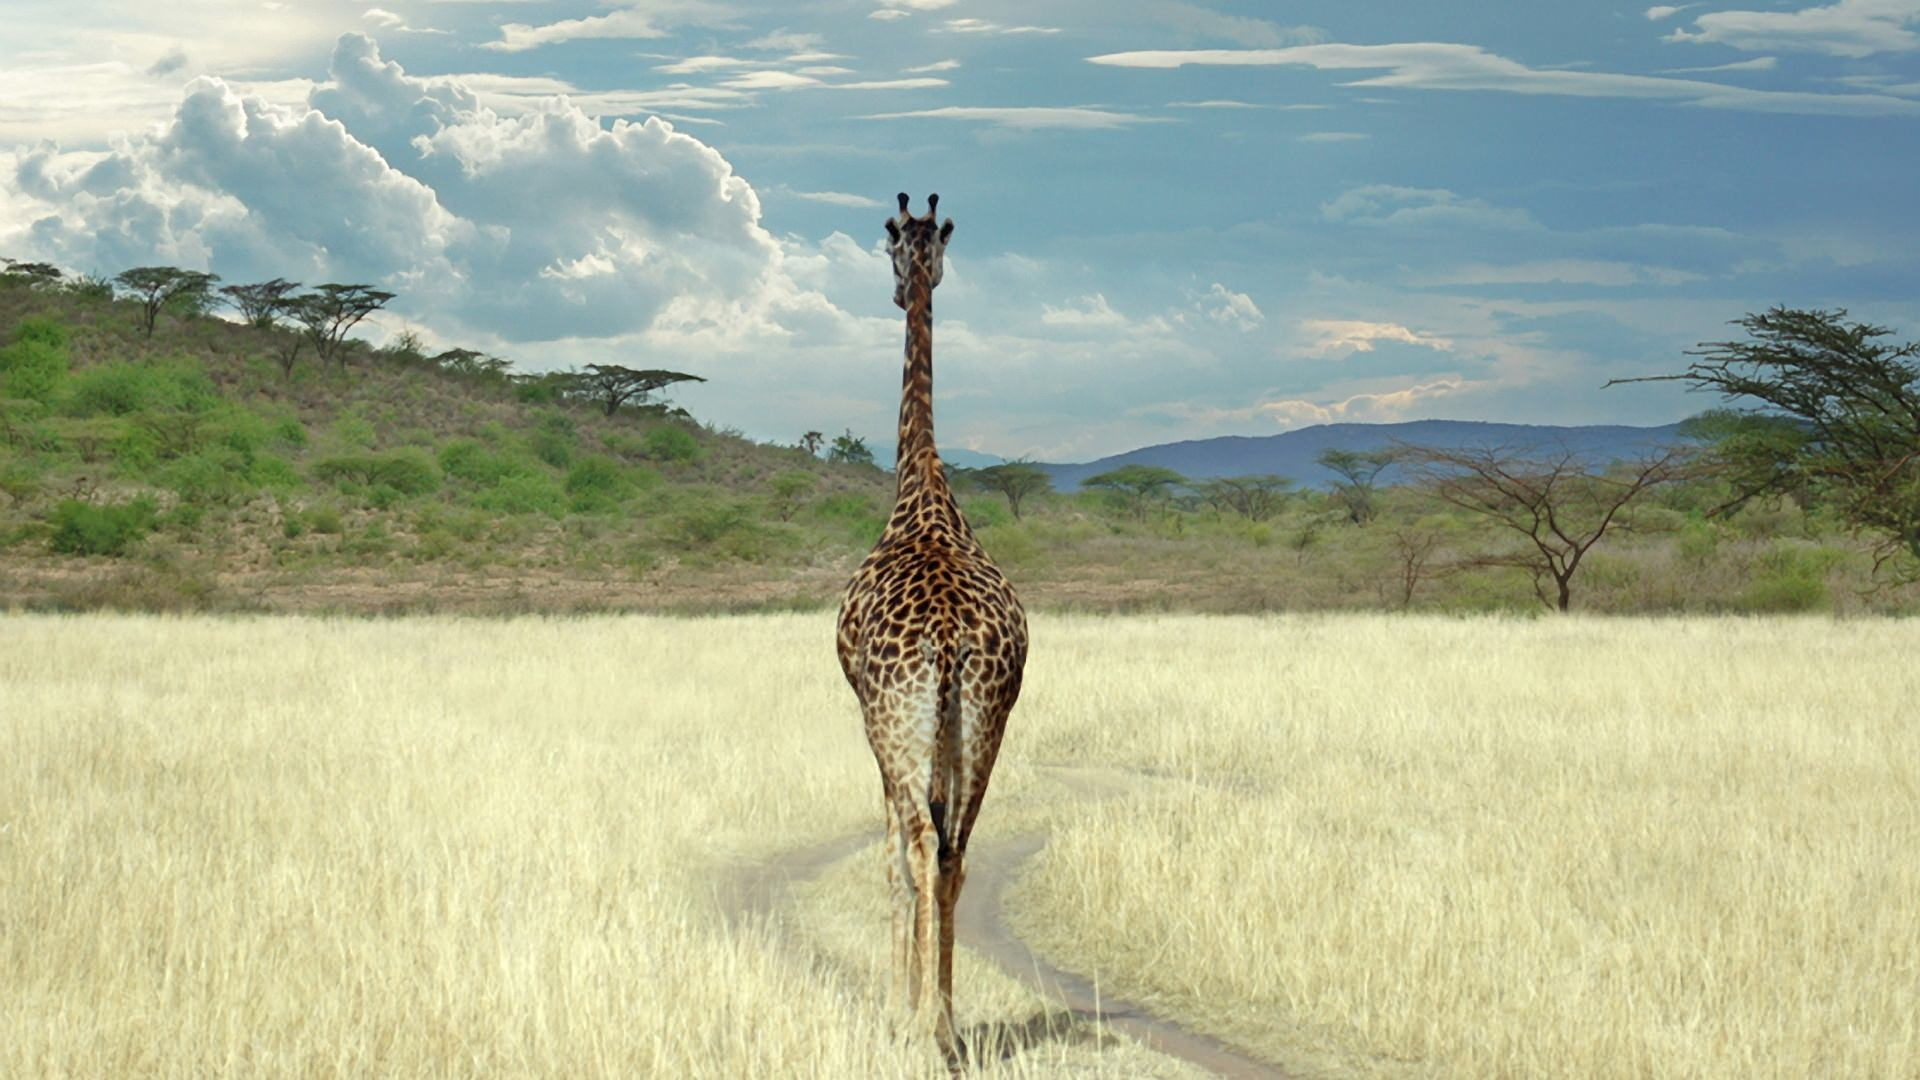 Giraffe Walking in Savanna Wallpaper